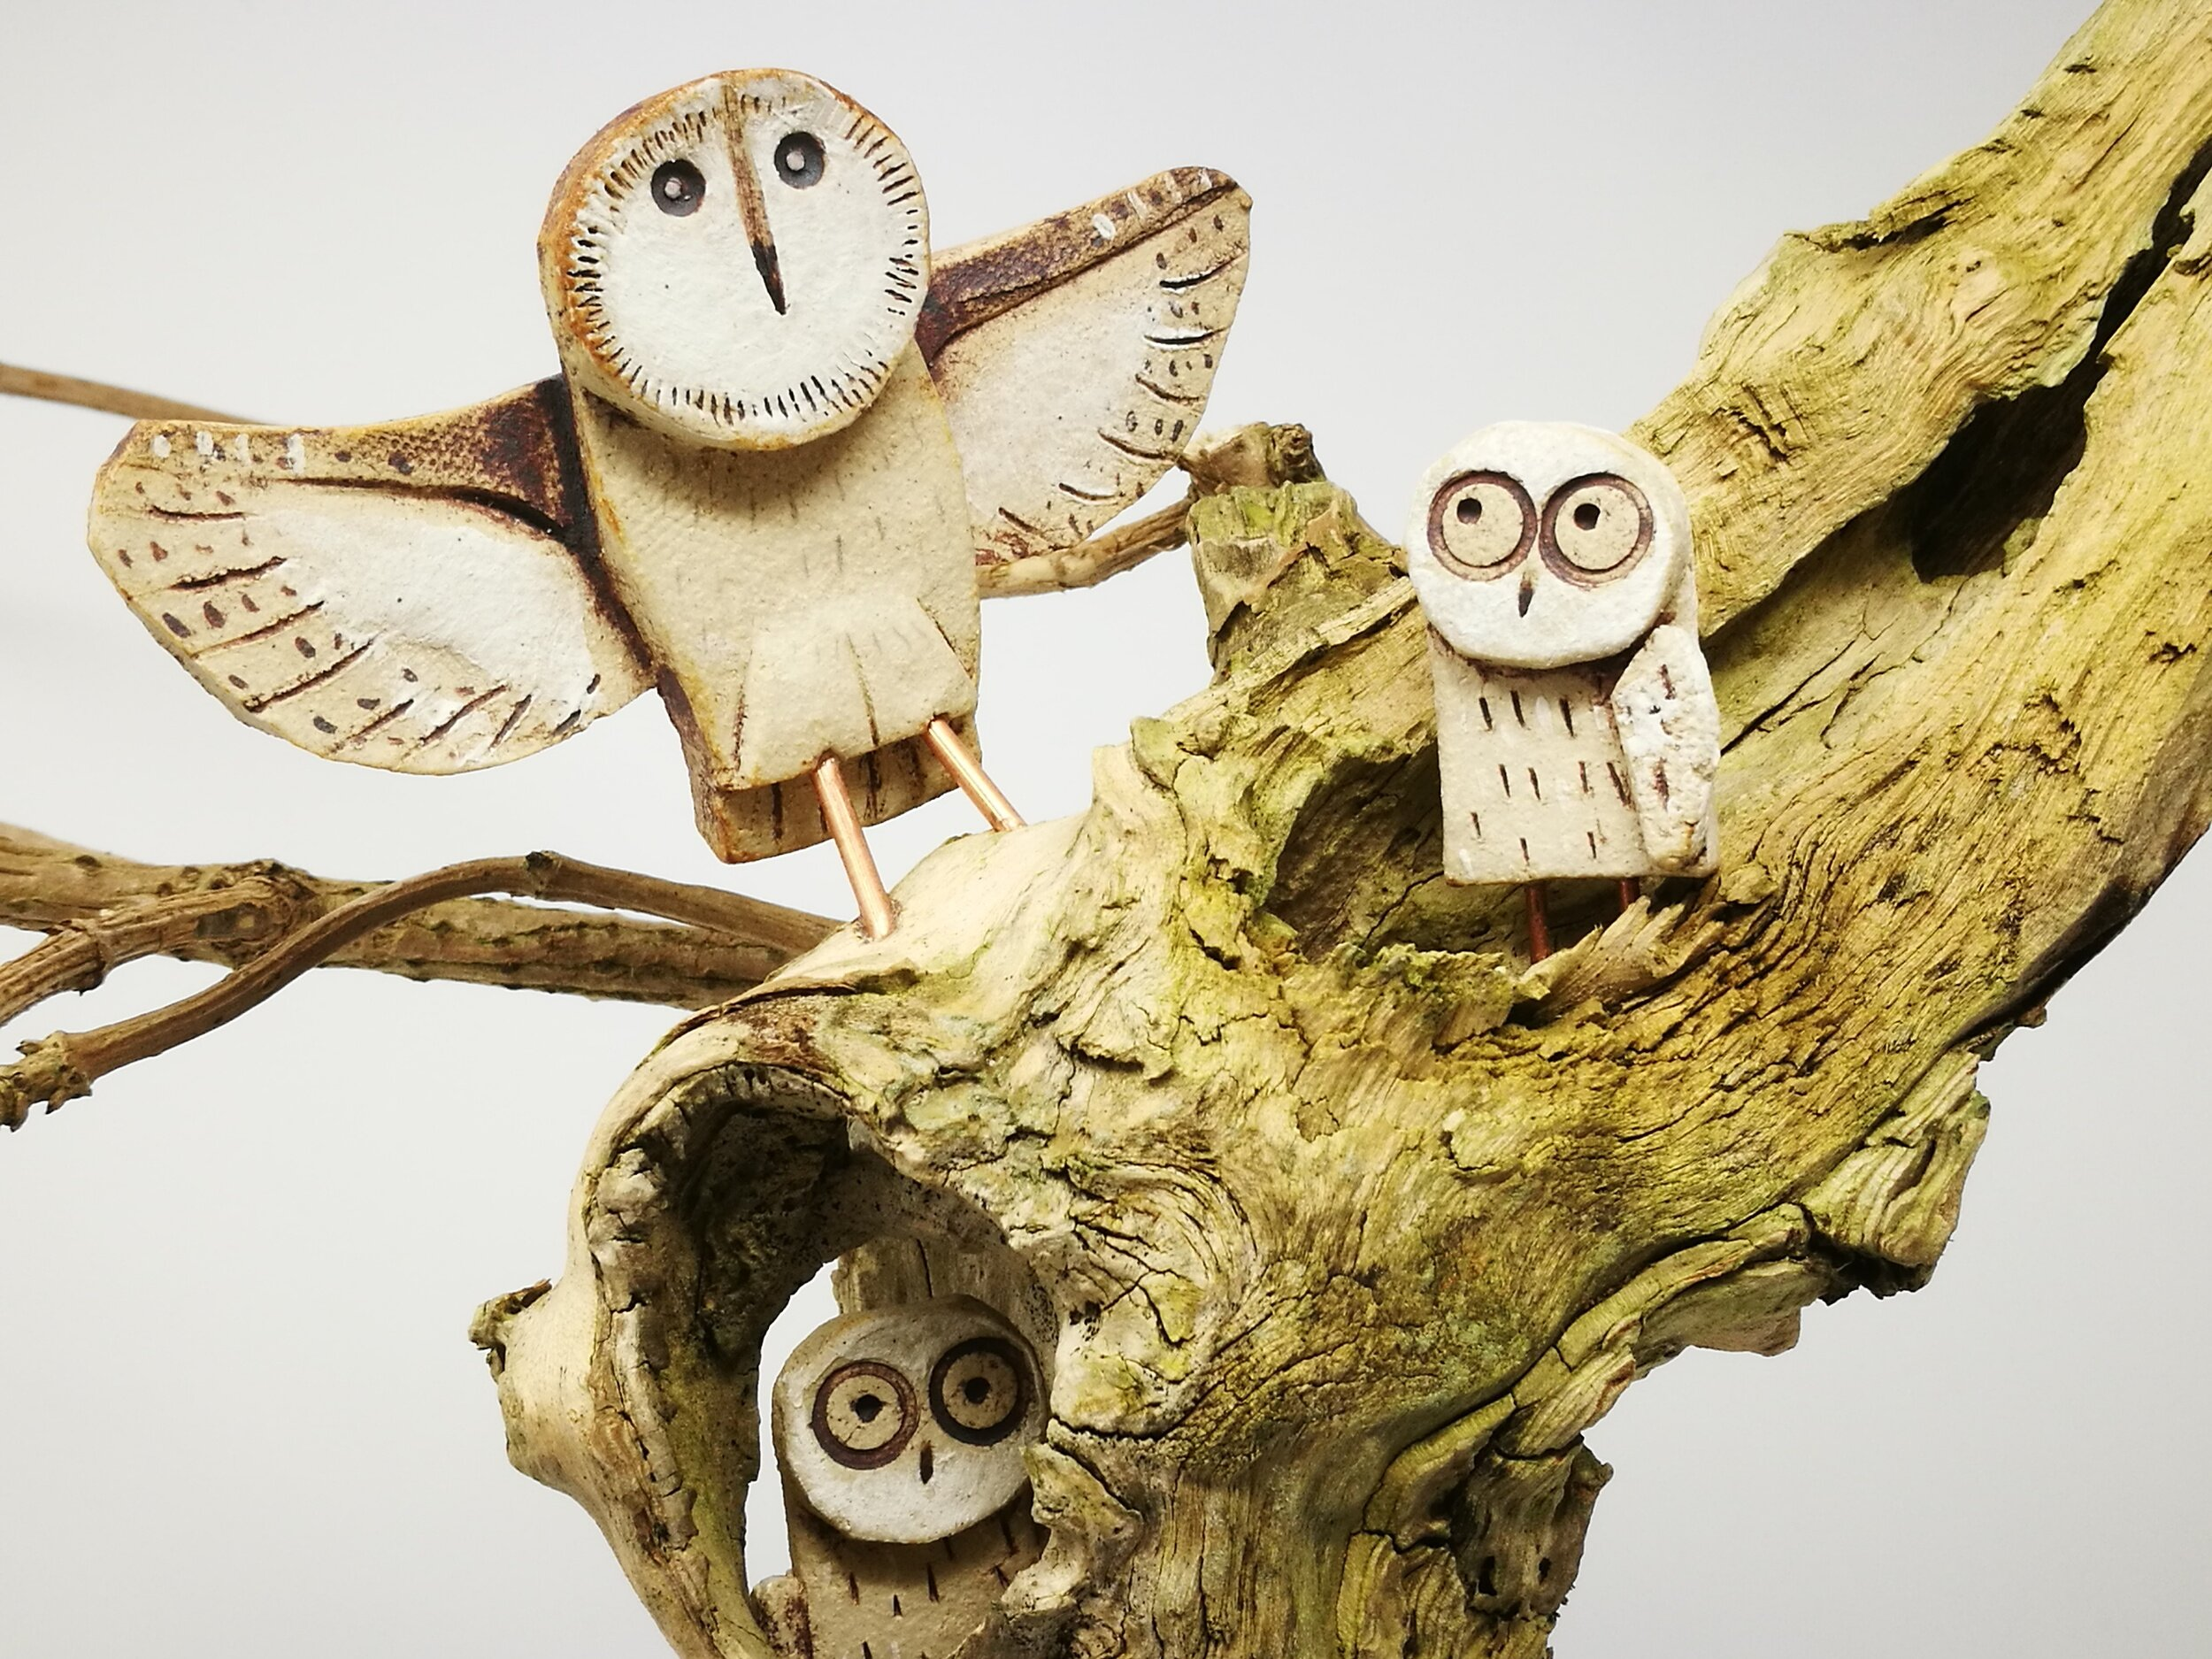 Owl Babies  / Ceramic and upcycled wood sculpture by Tim Warnes. Image © by Tim Warnes 2018